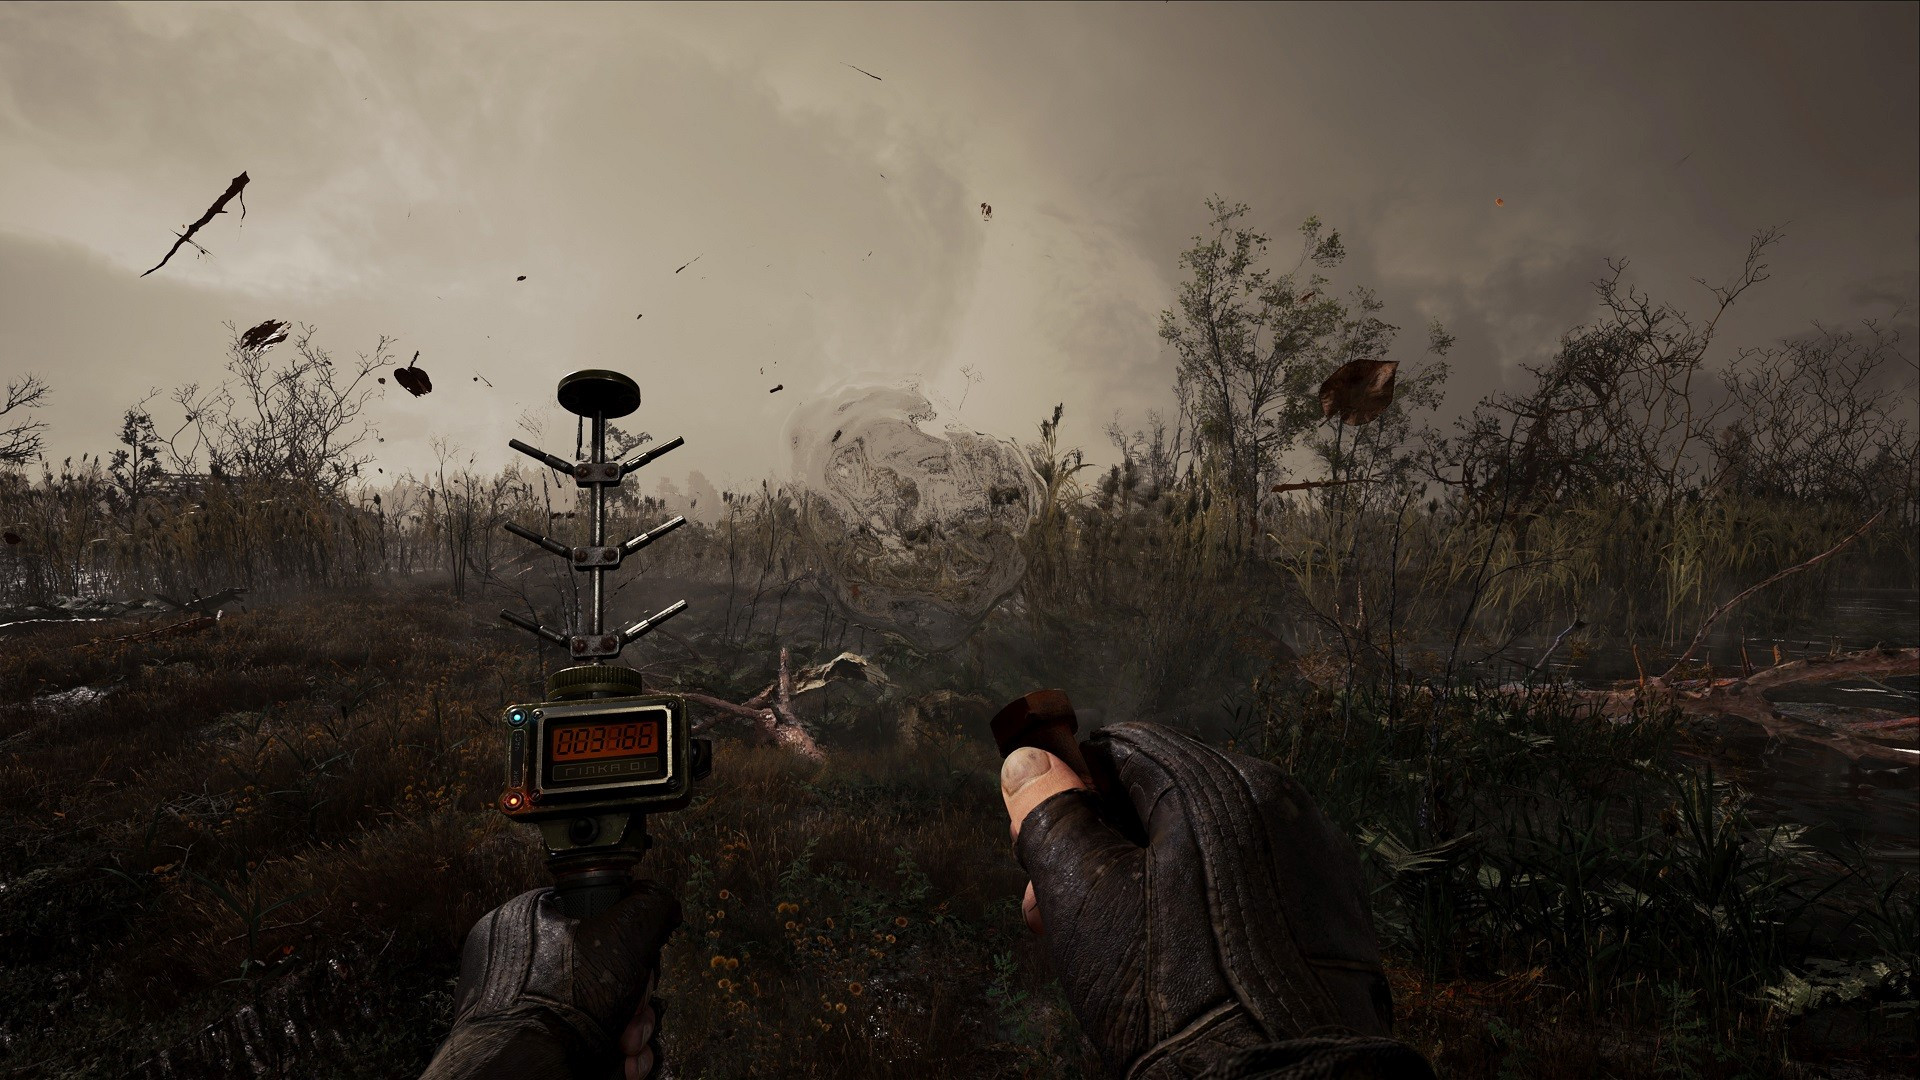 'S.T.A.L.K.E.R. 2' is coming to Xbox Series X/S and PC on April 28th, 2022   Engadget